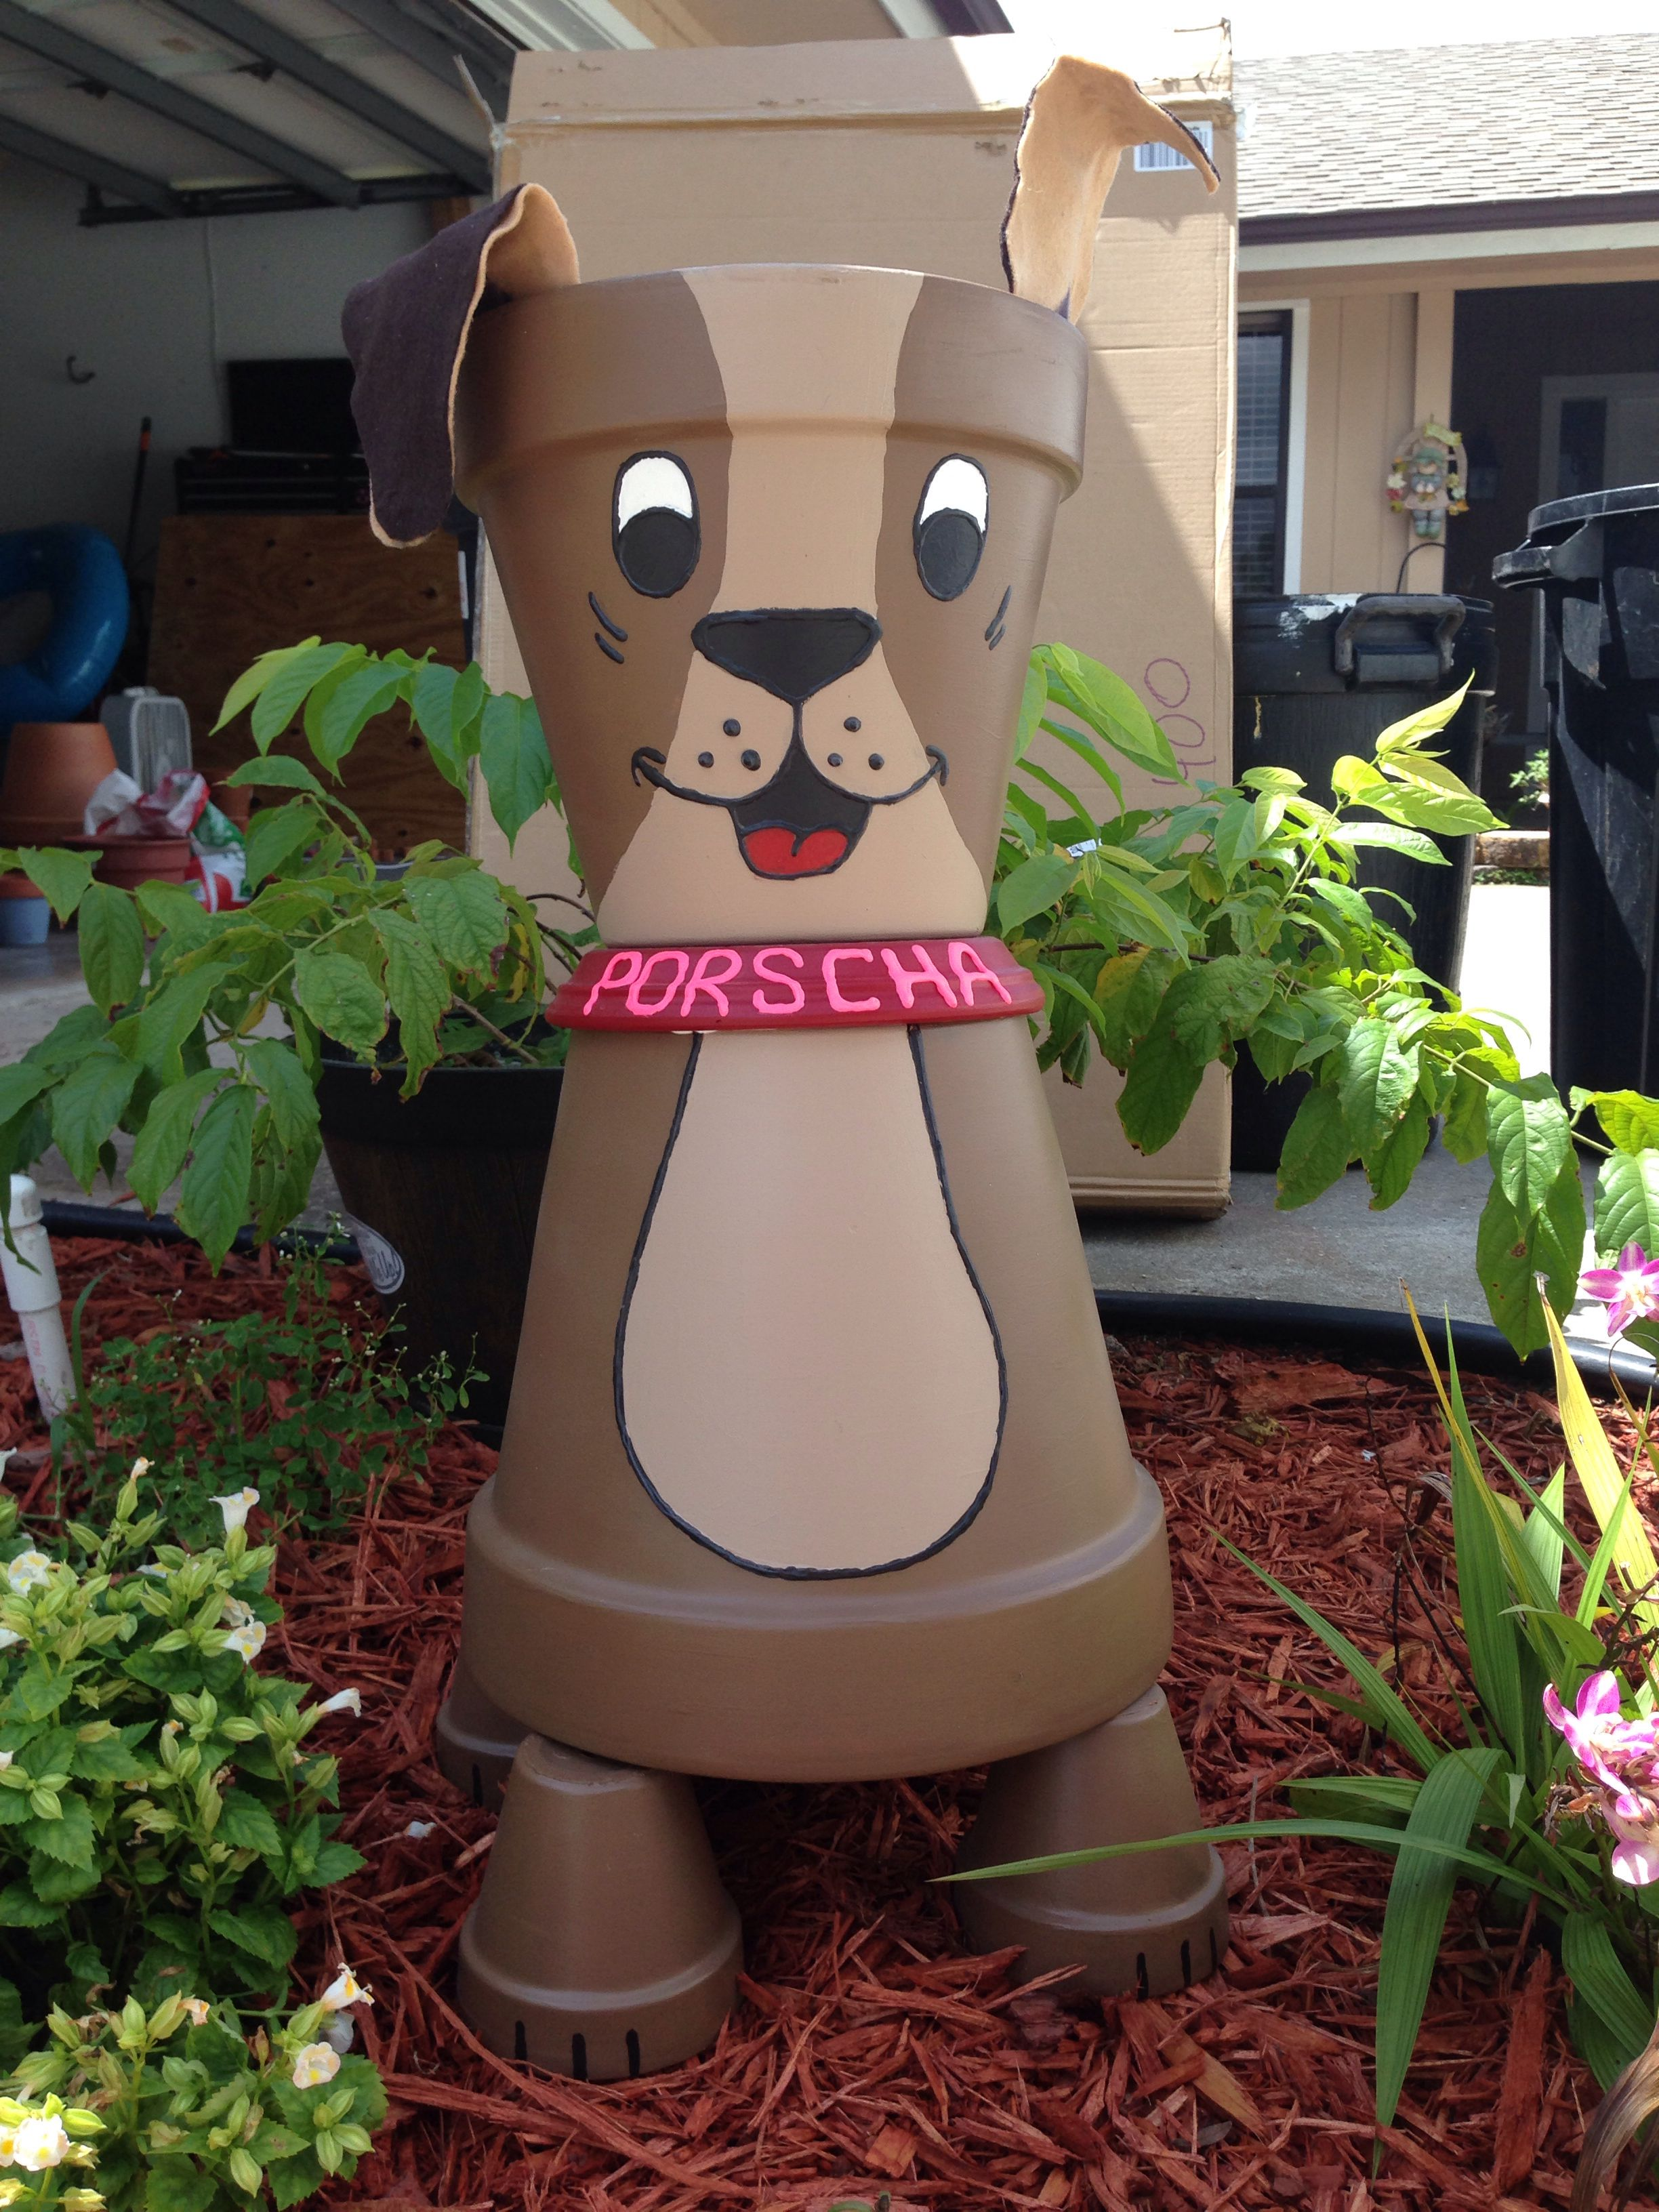 Tiestos Decorados Terra Cotta Pot Dog Craft Planters Pinterest Tiesto